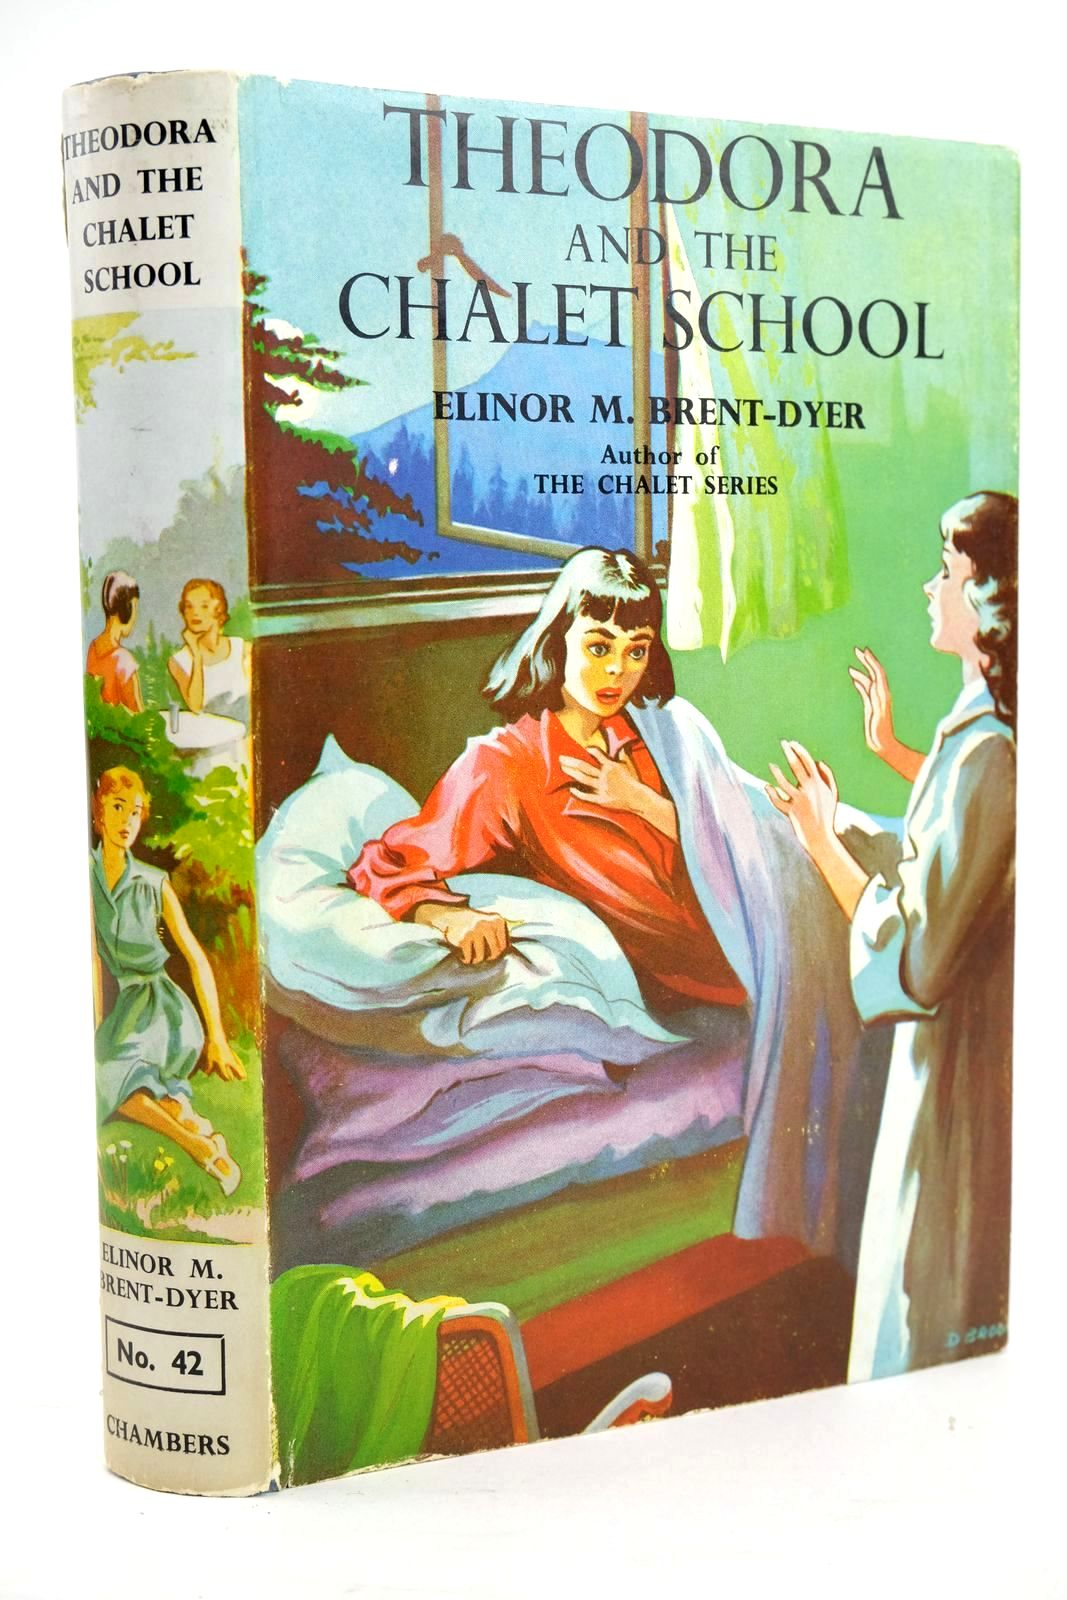 Photo of THEODORA AND THE CHALET SCHOOL written by Brent-Dyer, Elinor M. illustrated by Brook, D. published by W. & R. Chambers Limited (STOCK CODE: 1319457)  for sale by Stella & Rose's Books